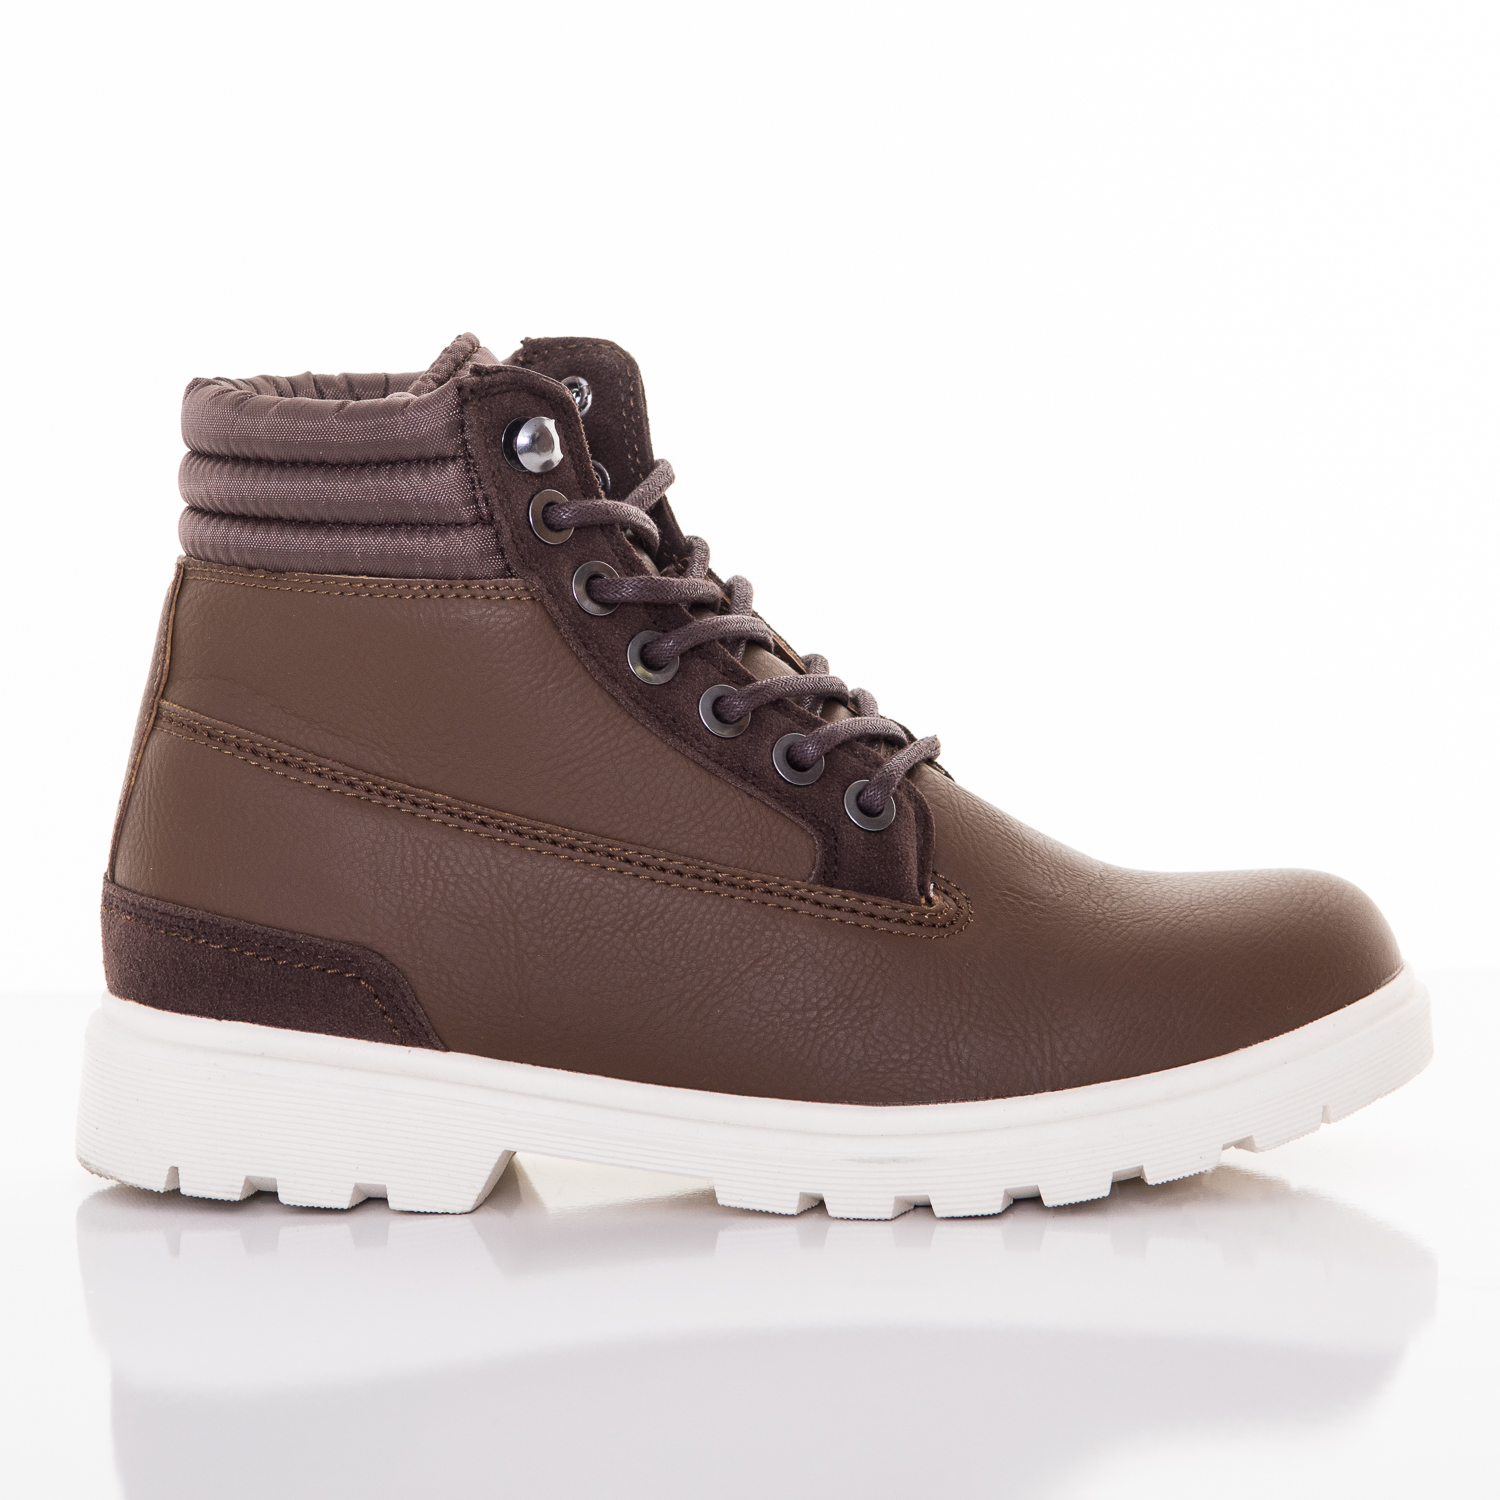 Zimná obuv Urban Classics Winter Boots Brown Darkbrown 43